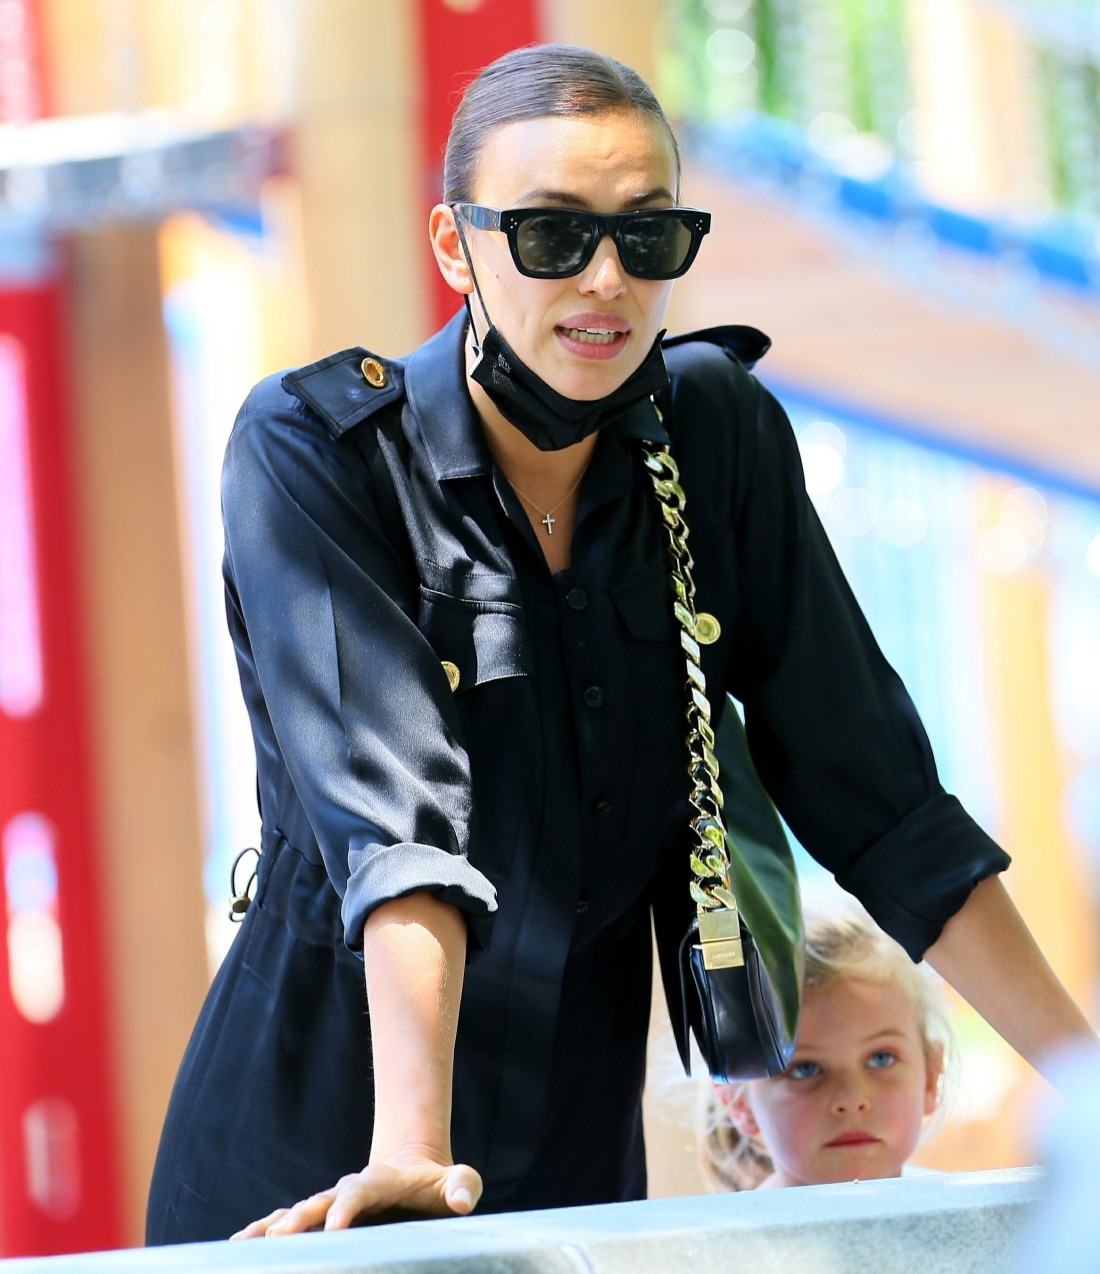 Irina Shayk takes her daughter to the park after spending time with Kanye West!